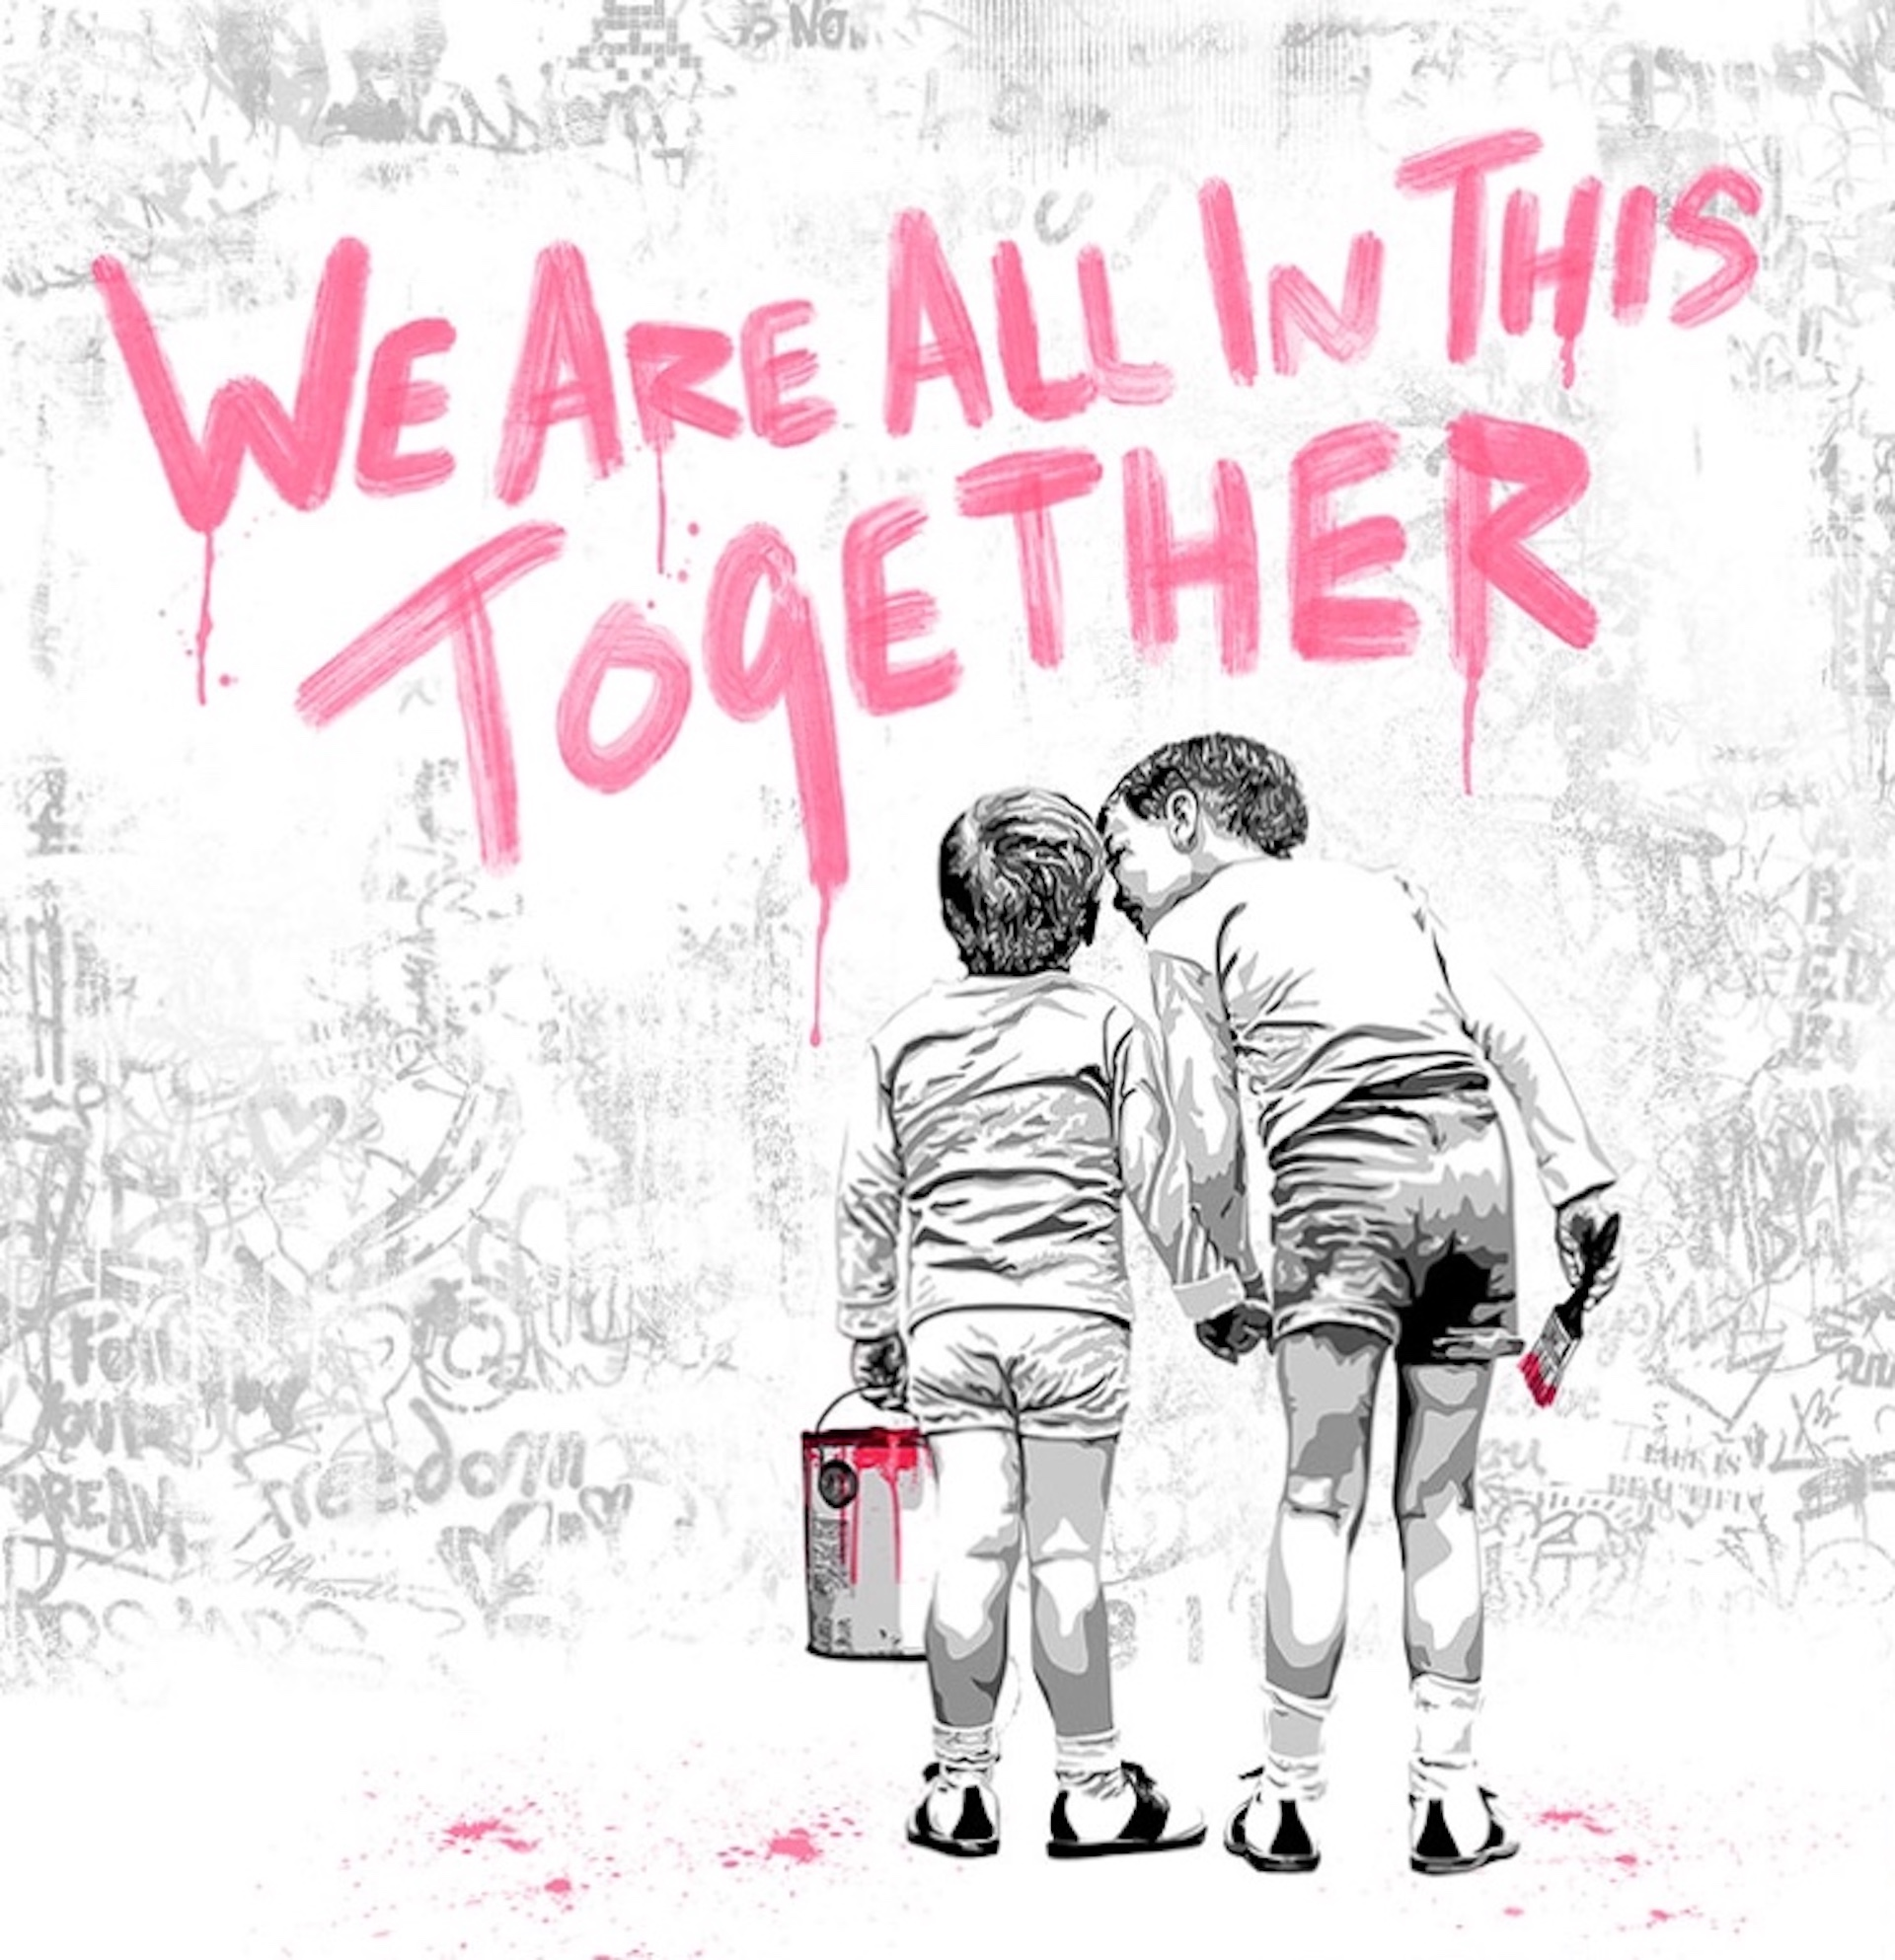 We are all in this together (Fuchsia Edition) by Mr. Brainwash